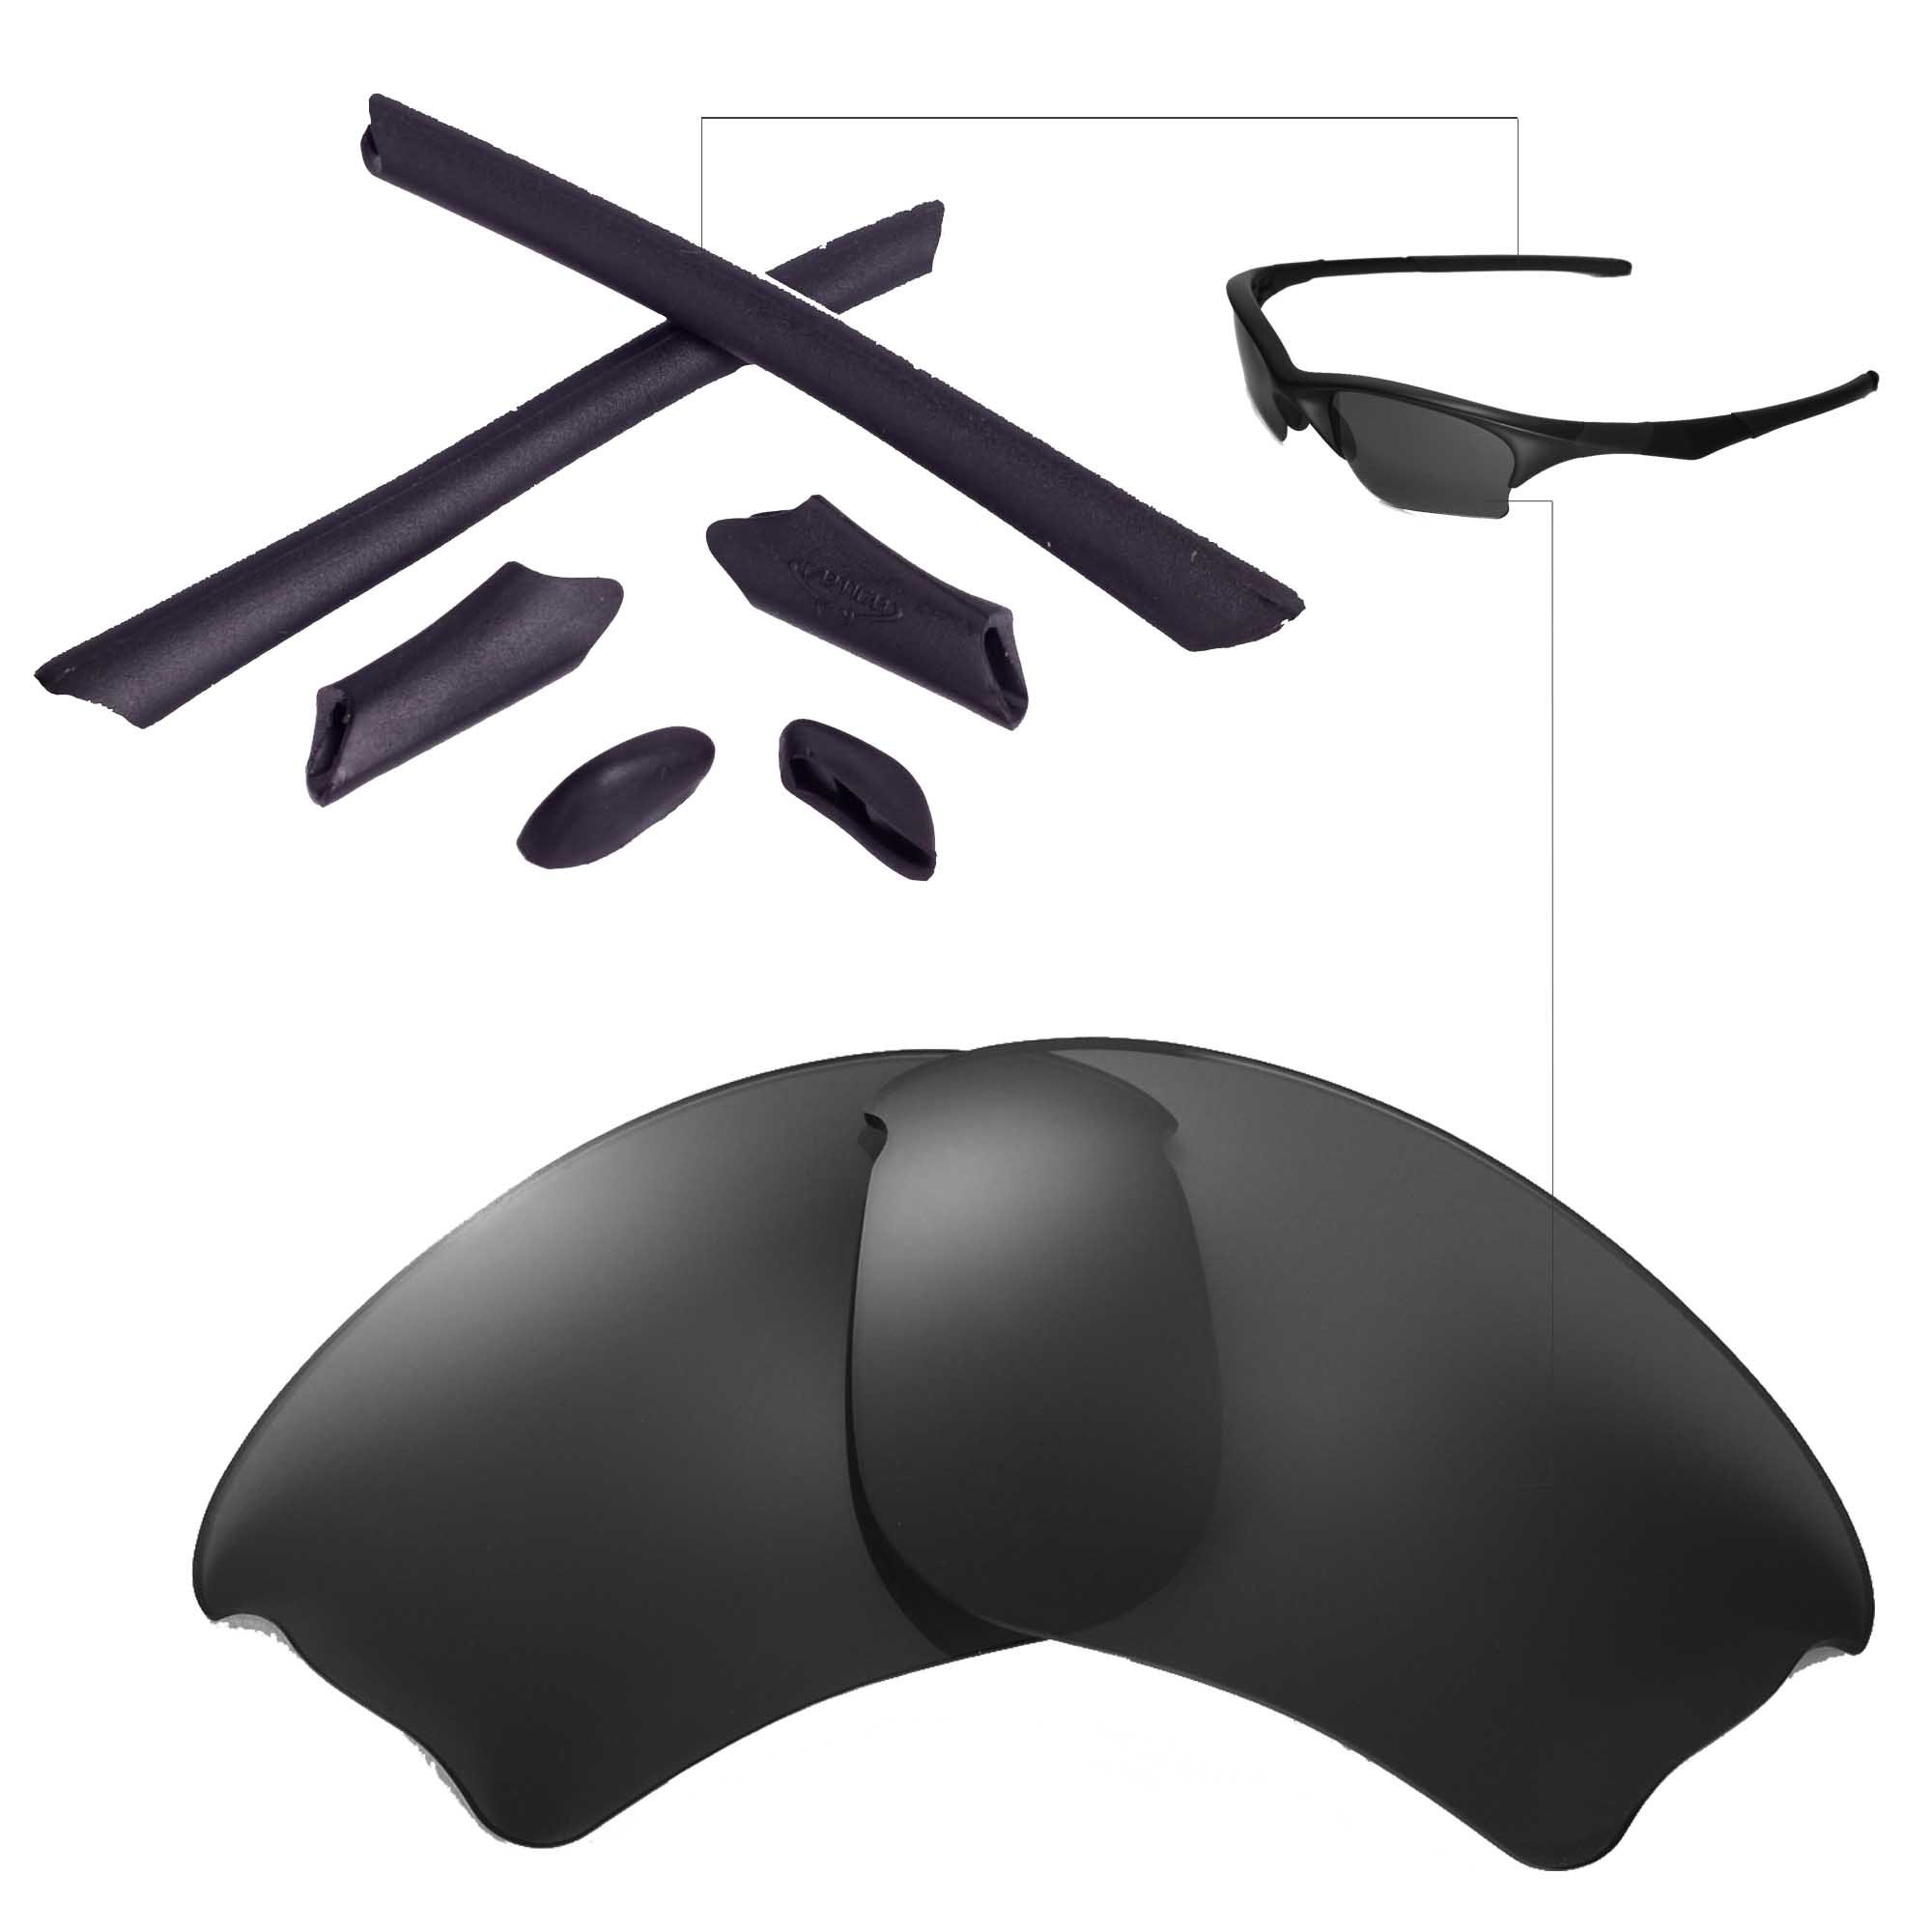 Walleva Polarized Lenses And Rubber Kit(Earsocks+Nosepads) For Oakley Half Jacket XLJ (Black Polarized Lenses + Black Rubber) by Walleva